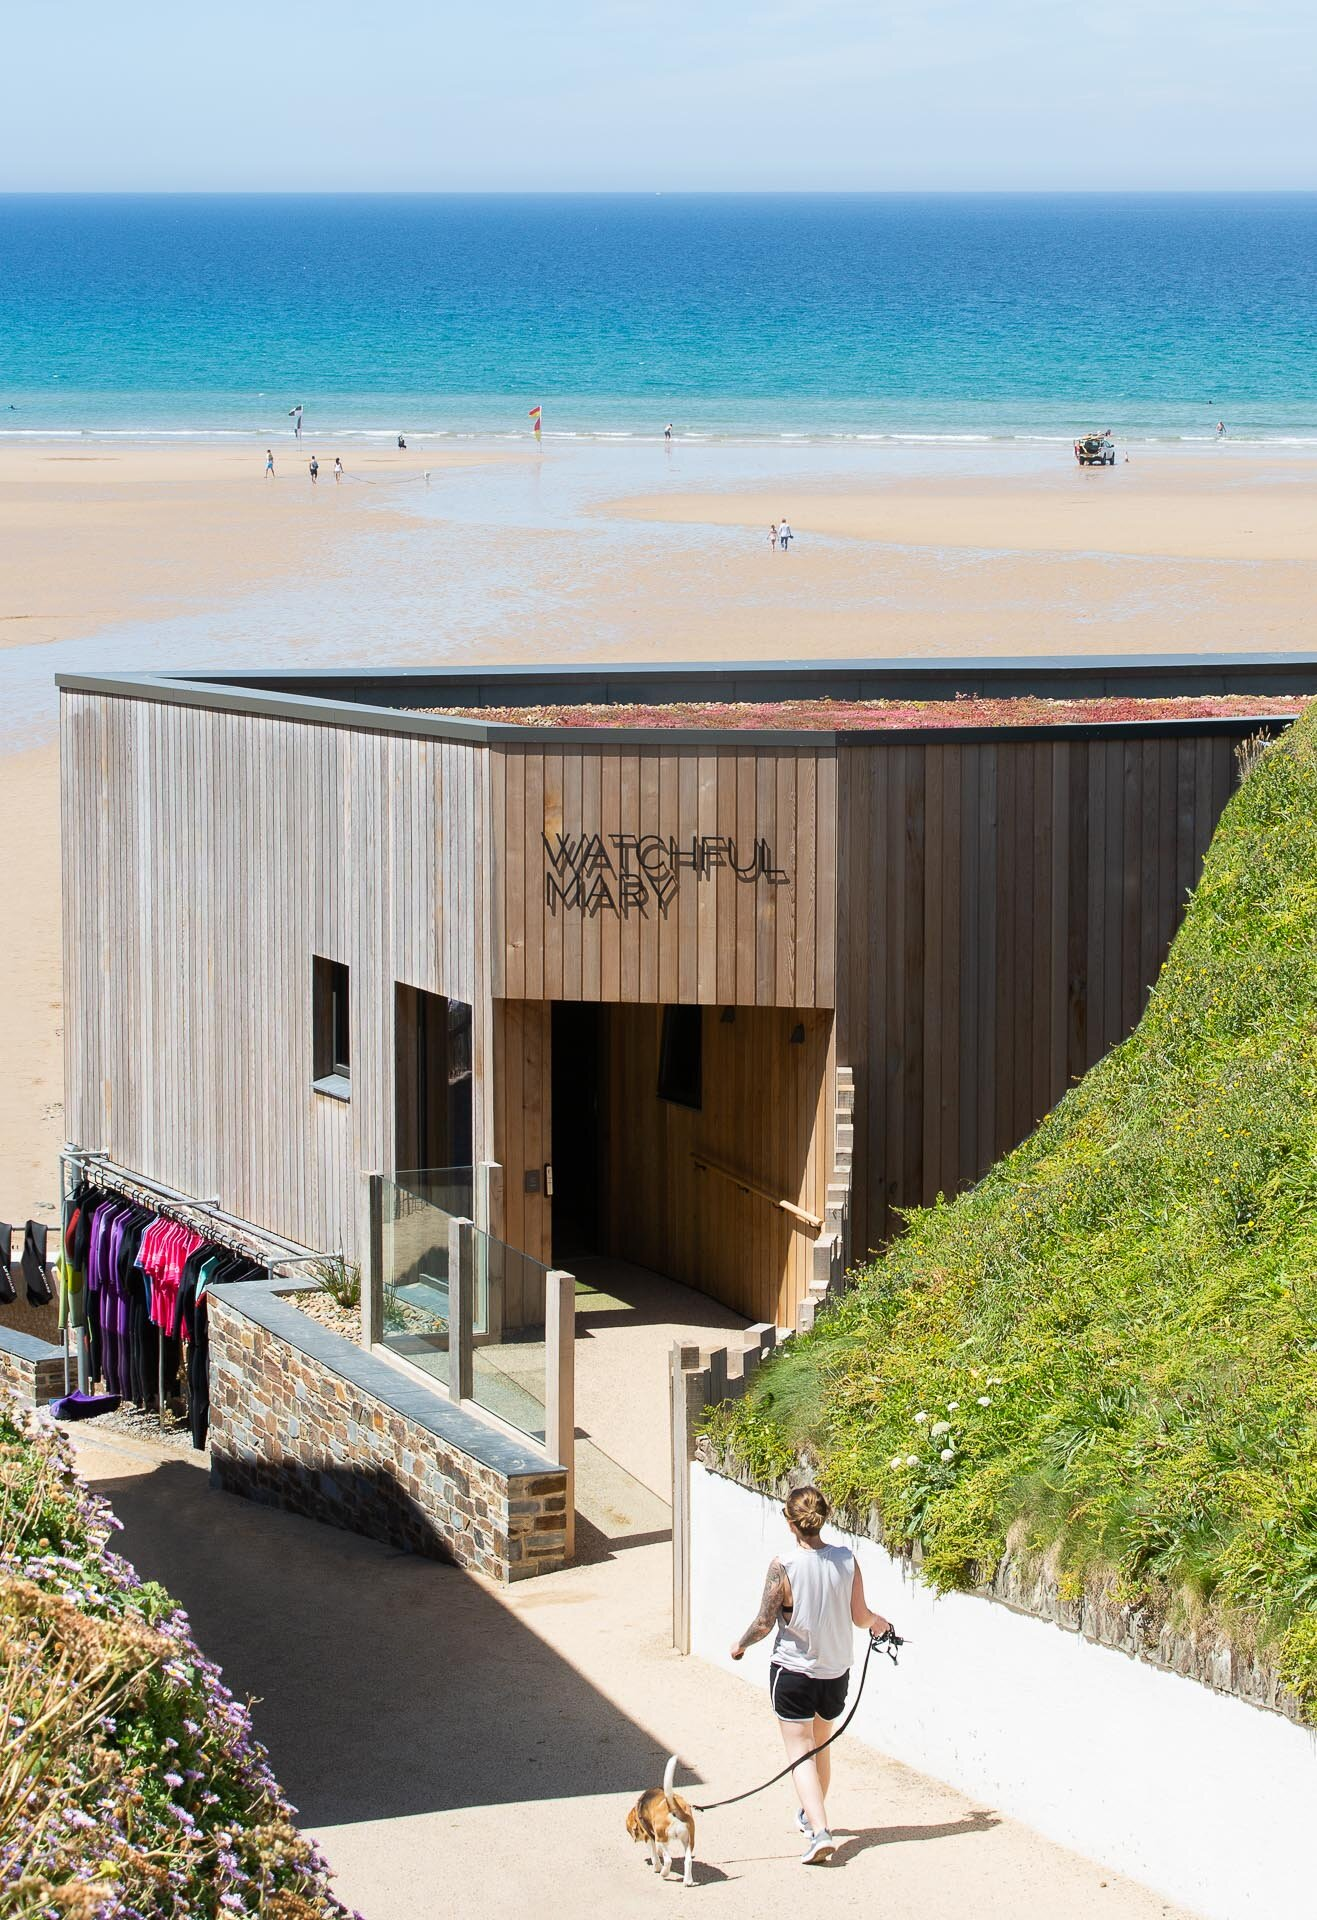 Watergate Bay Hotel_Watchful Mary_LowRES_1.jpg